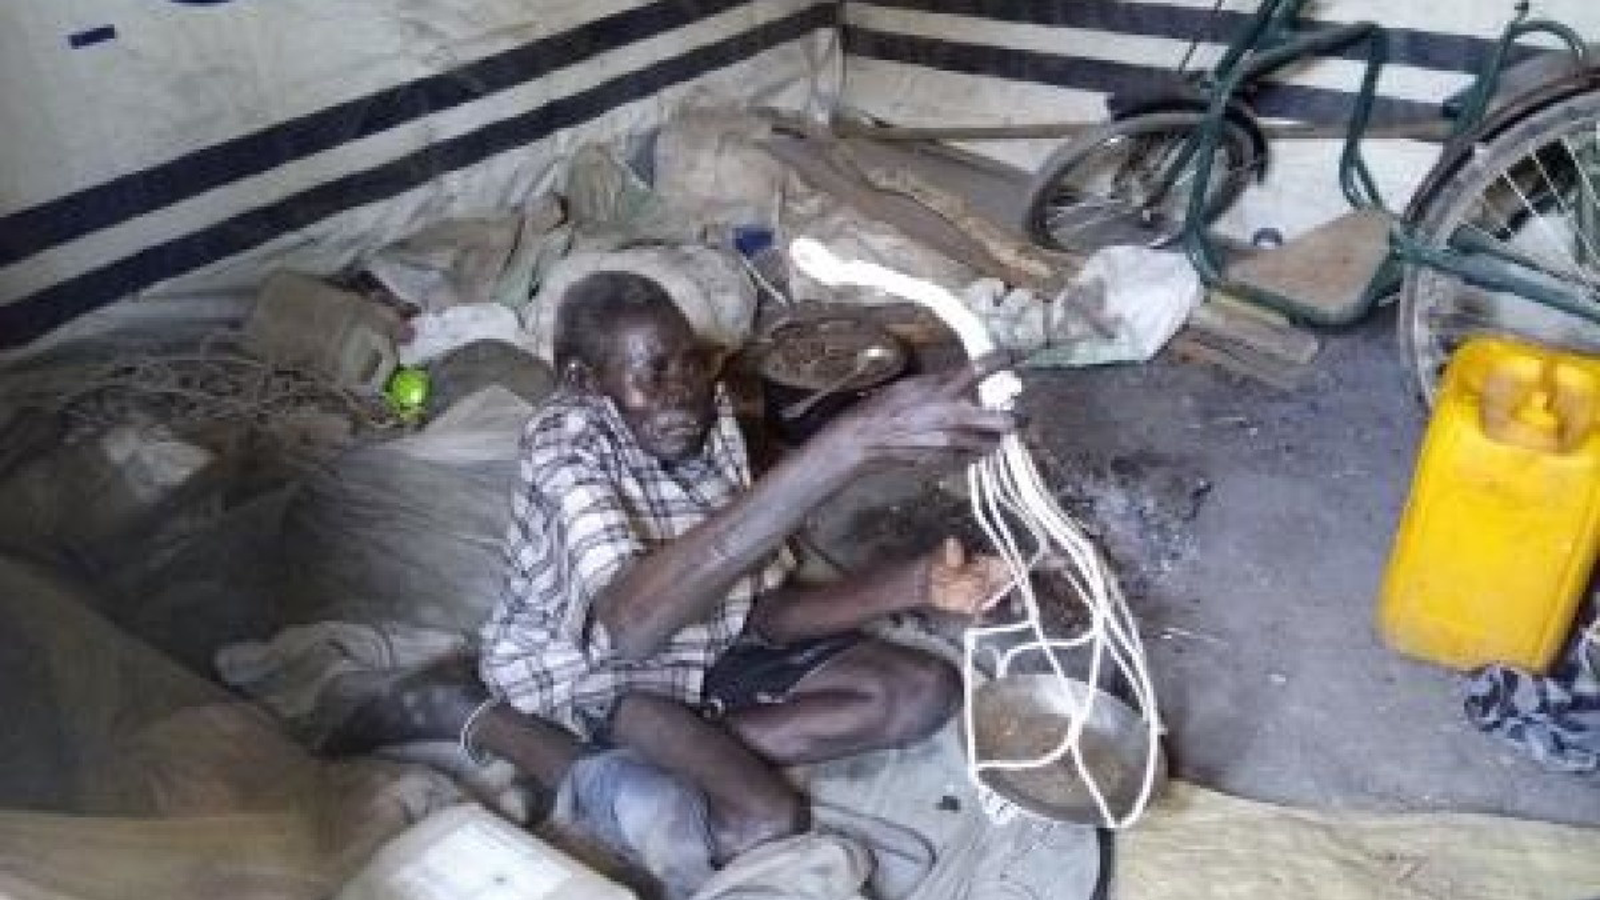 South Sudan: providing mobility during a food crisis